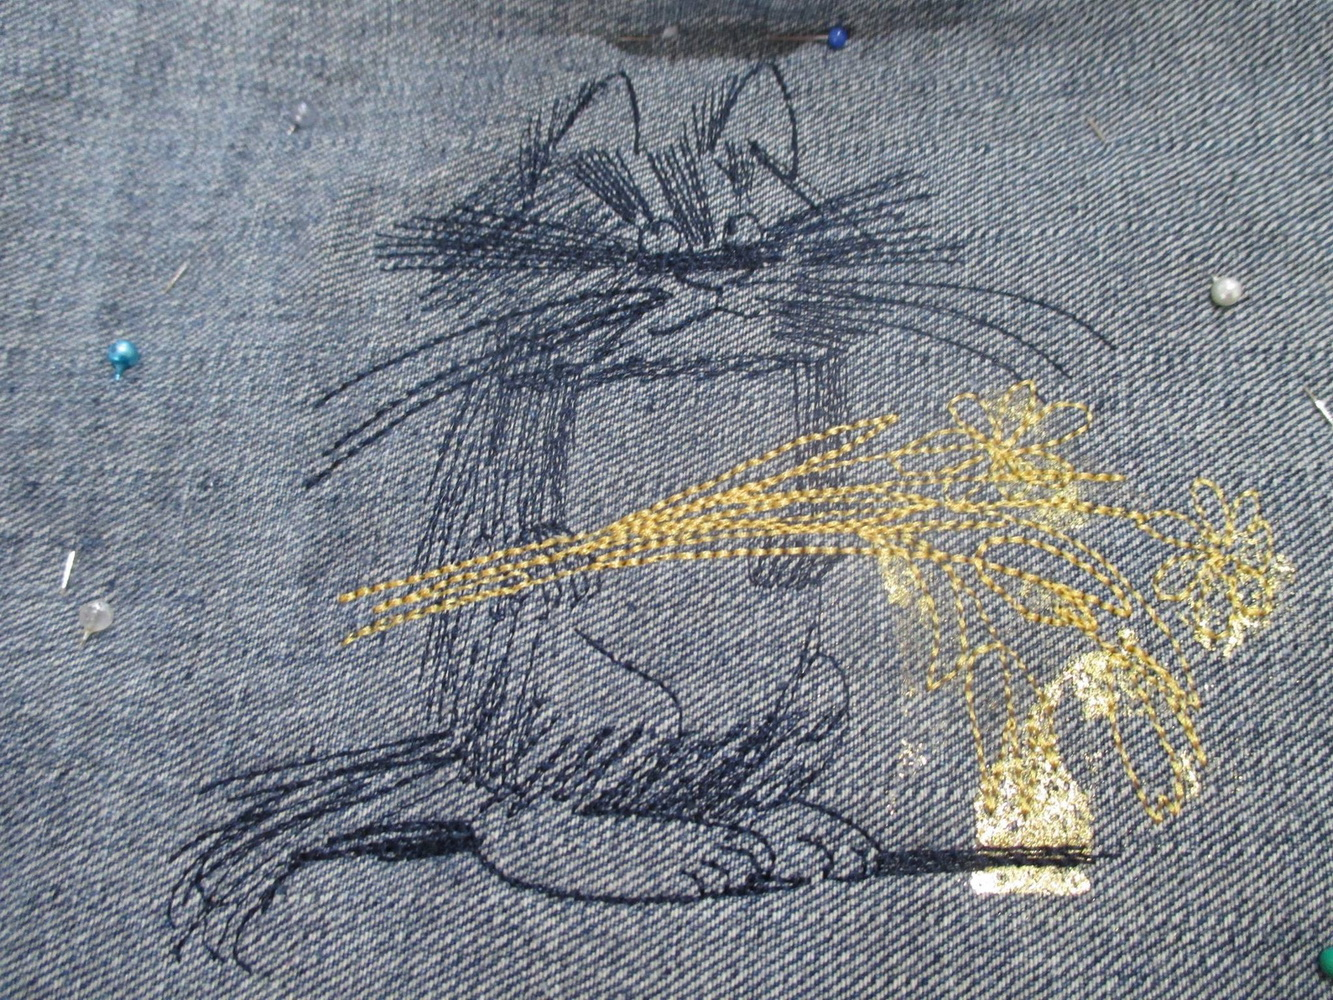 Embroidered Unhappy cat with flowers